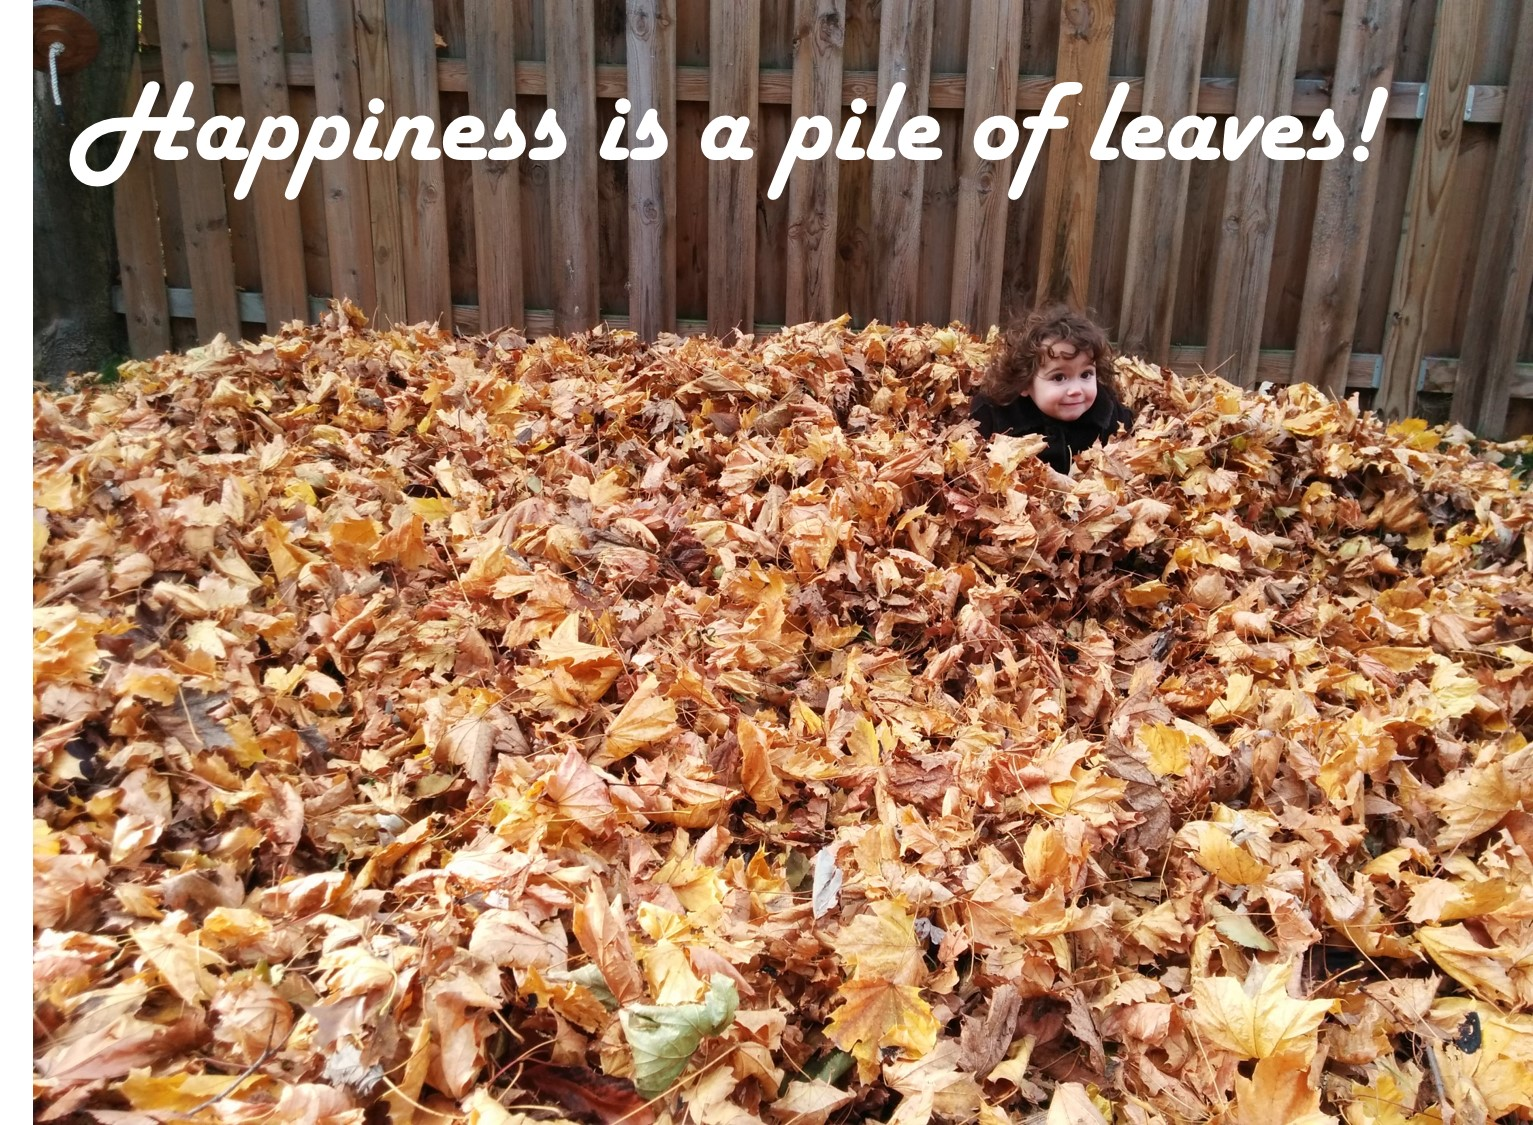 happiness-is-a-pile-of-leaves